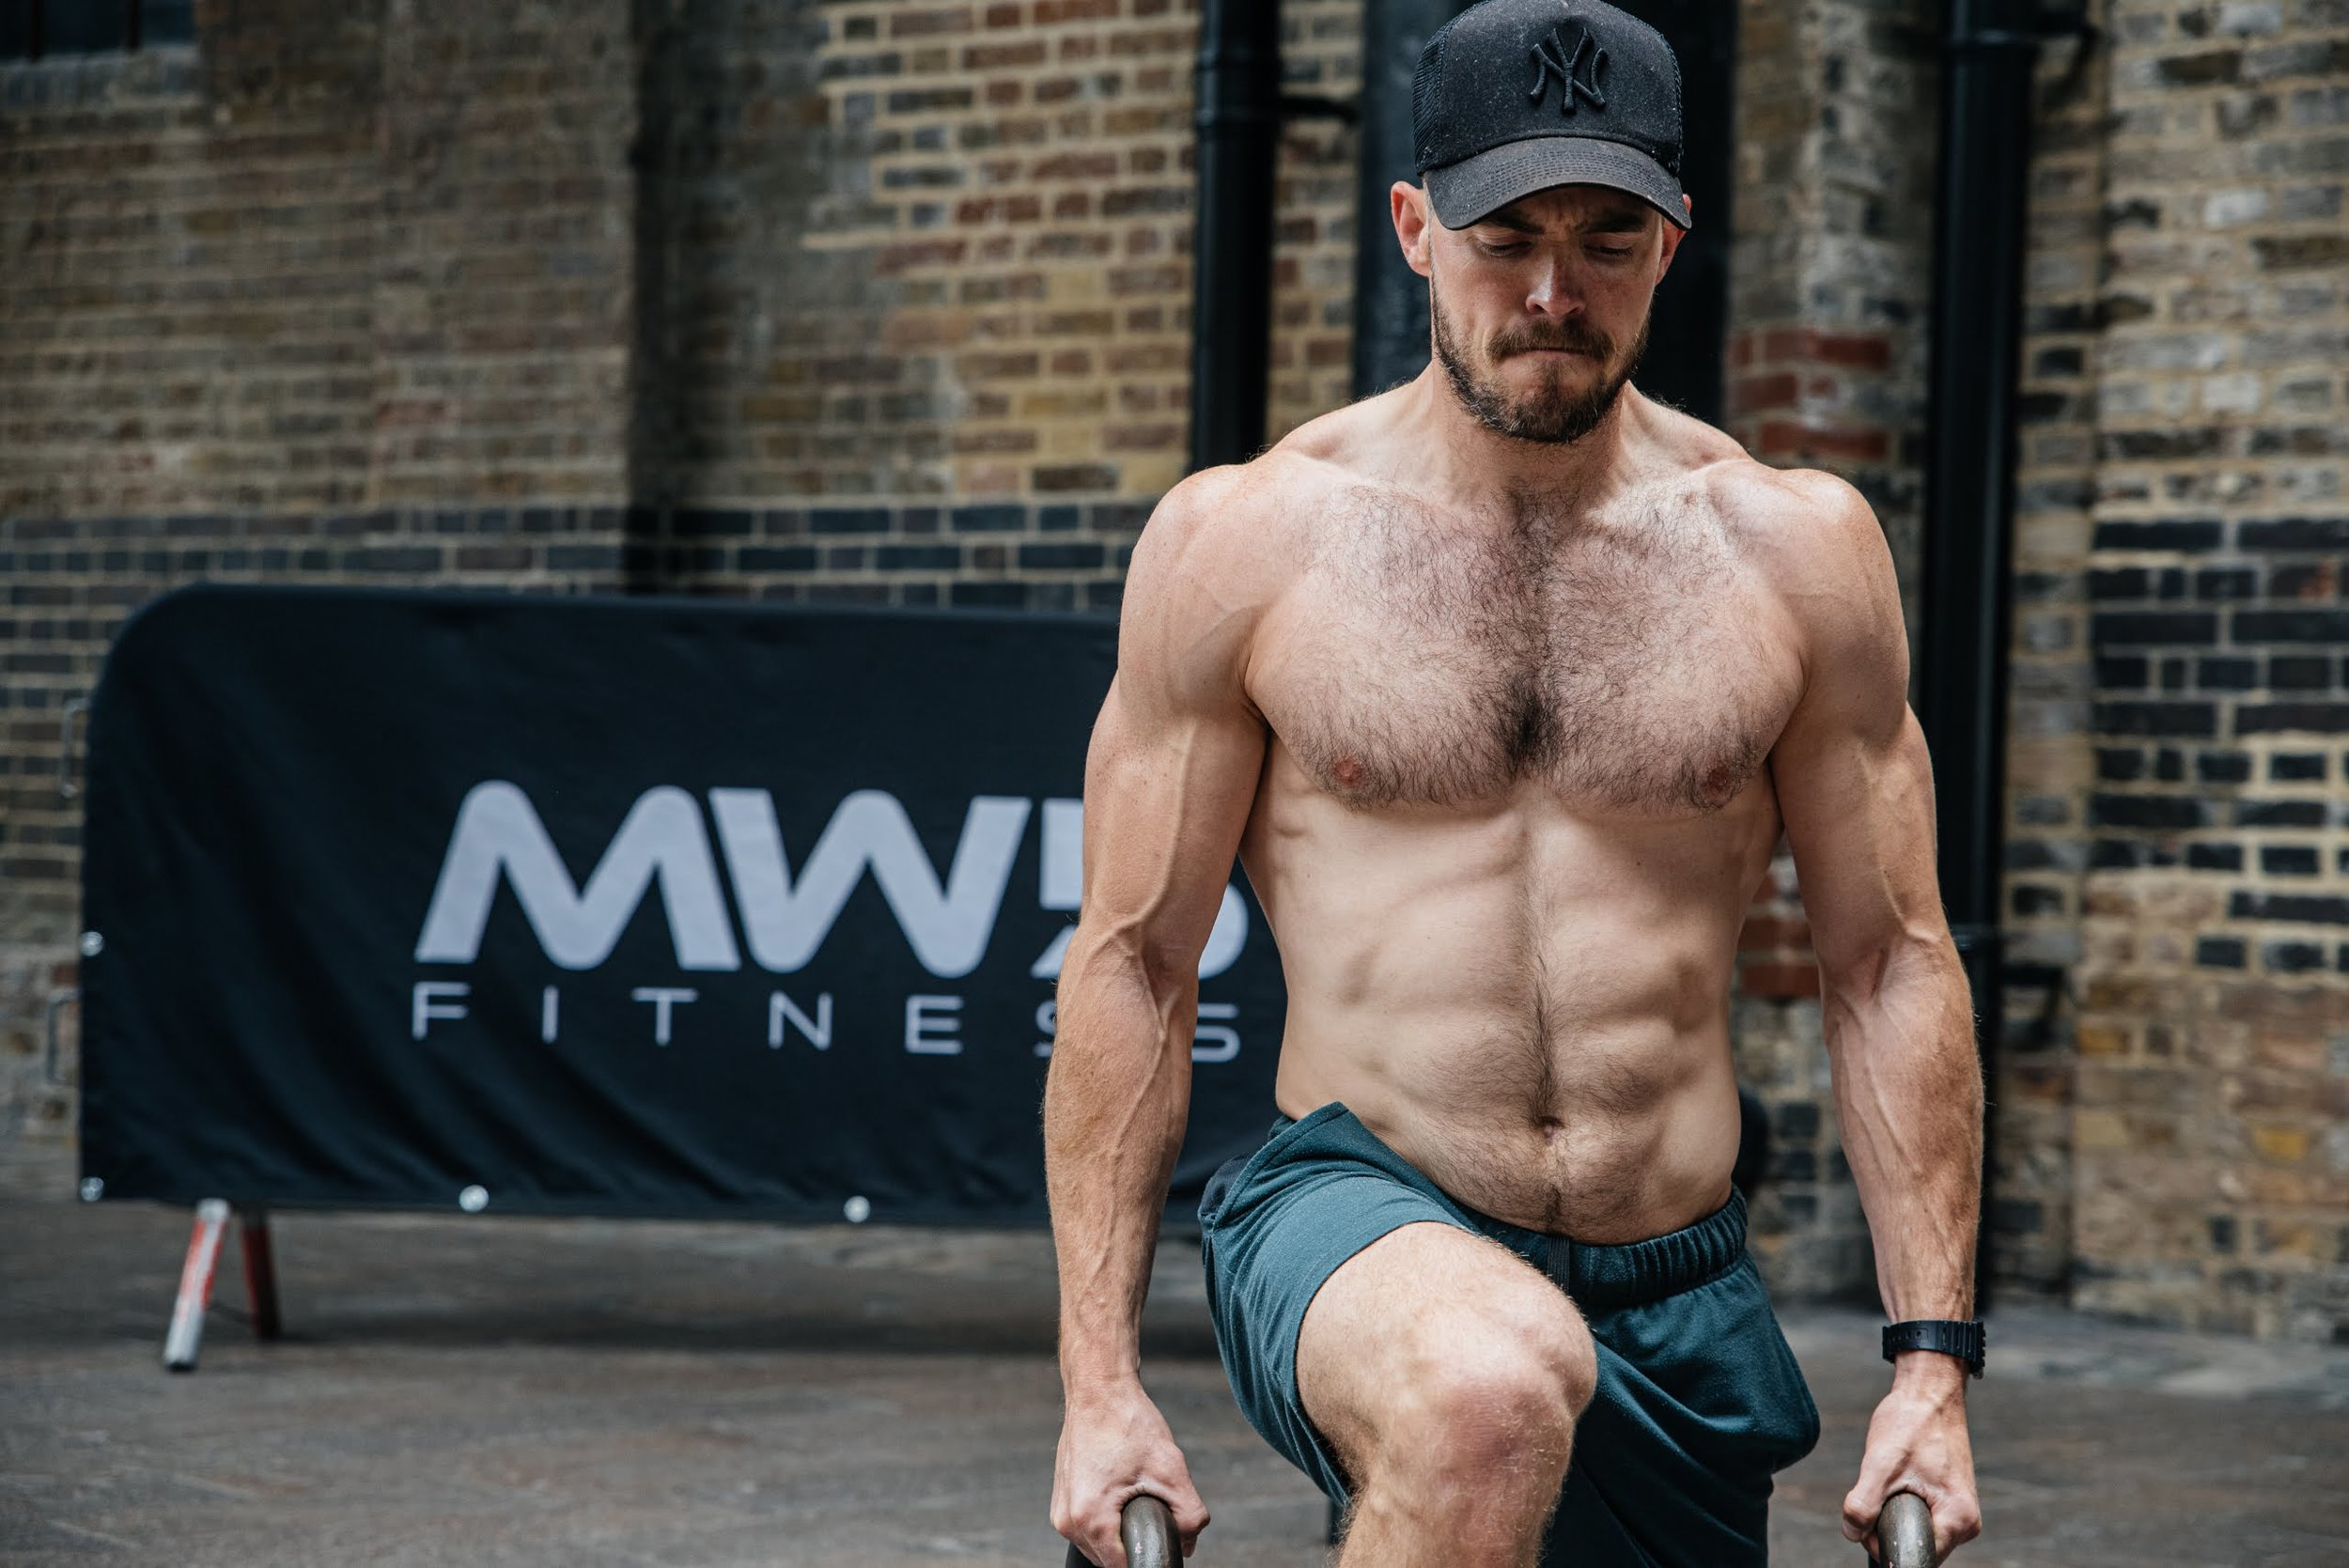 MW5 Athlete Series - If you want to achieve a combination of being fit, strong and athletic than this is the plan for you. Three separate ruthless programmes which will sky rocket your performance, test your mental capacity, aerobic capacity and muscular endurance. Expect heavy weights, high volume and explosive workouts that encourage hard work to help you live easy!